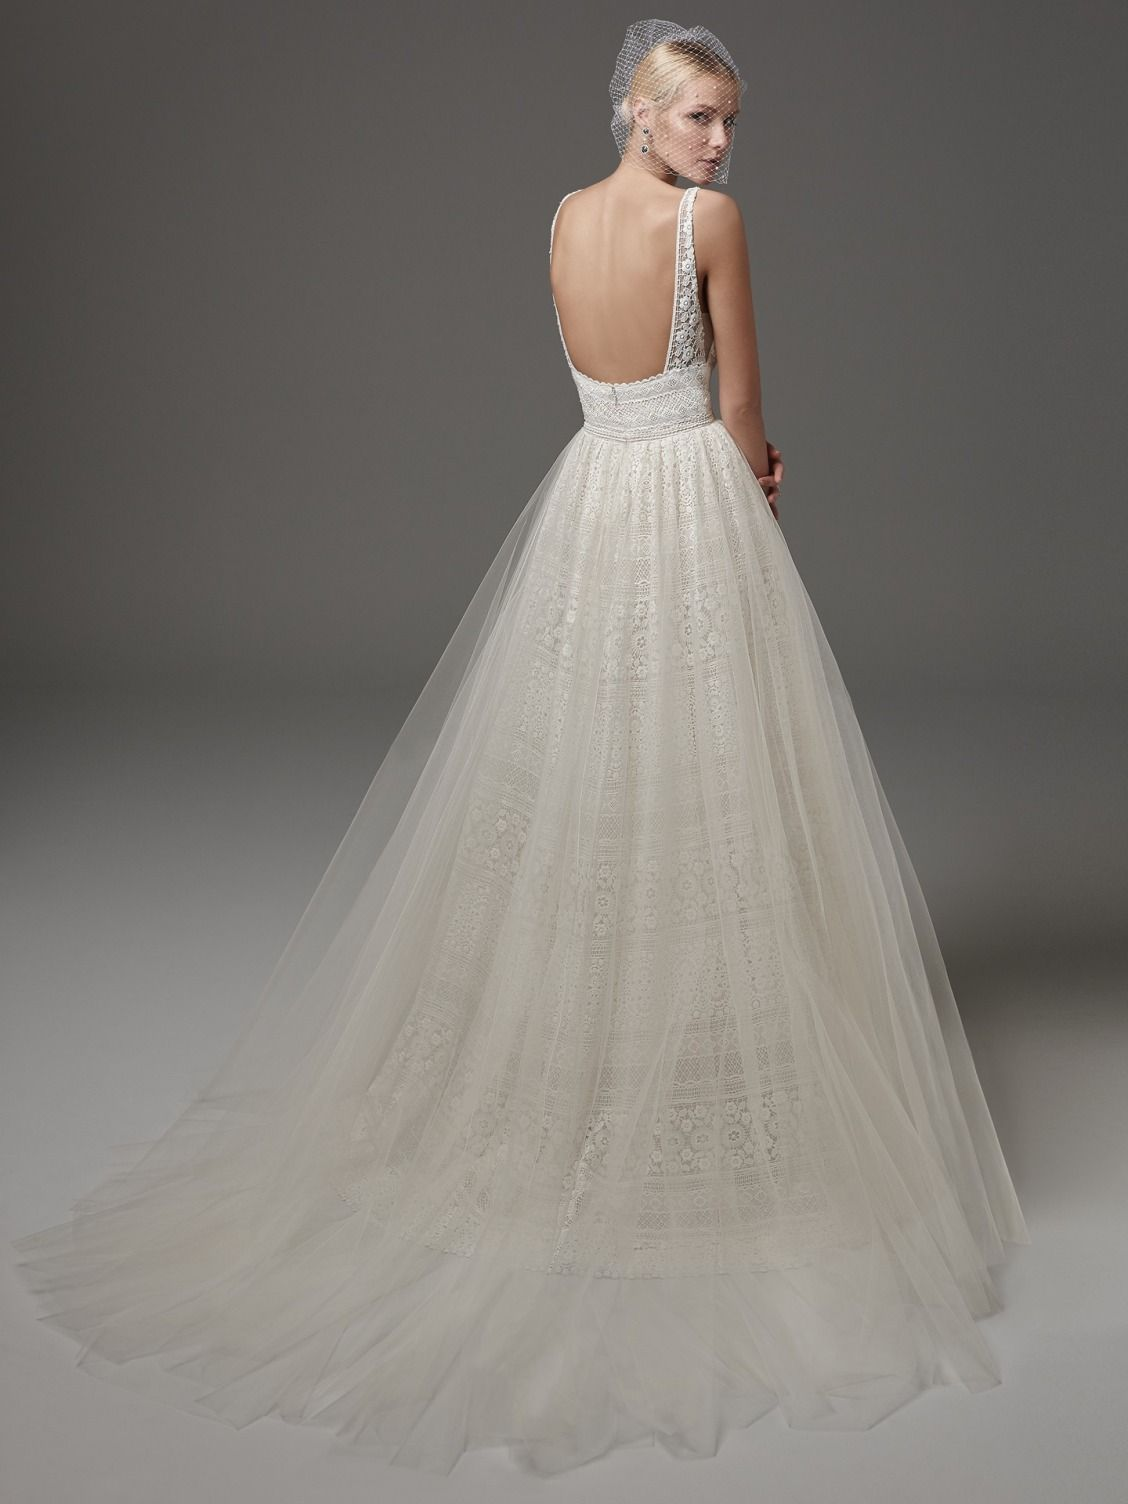 Evan by sottero and midgley wedding dresses most pinned wedding